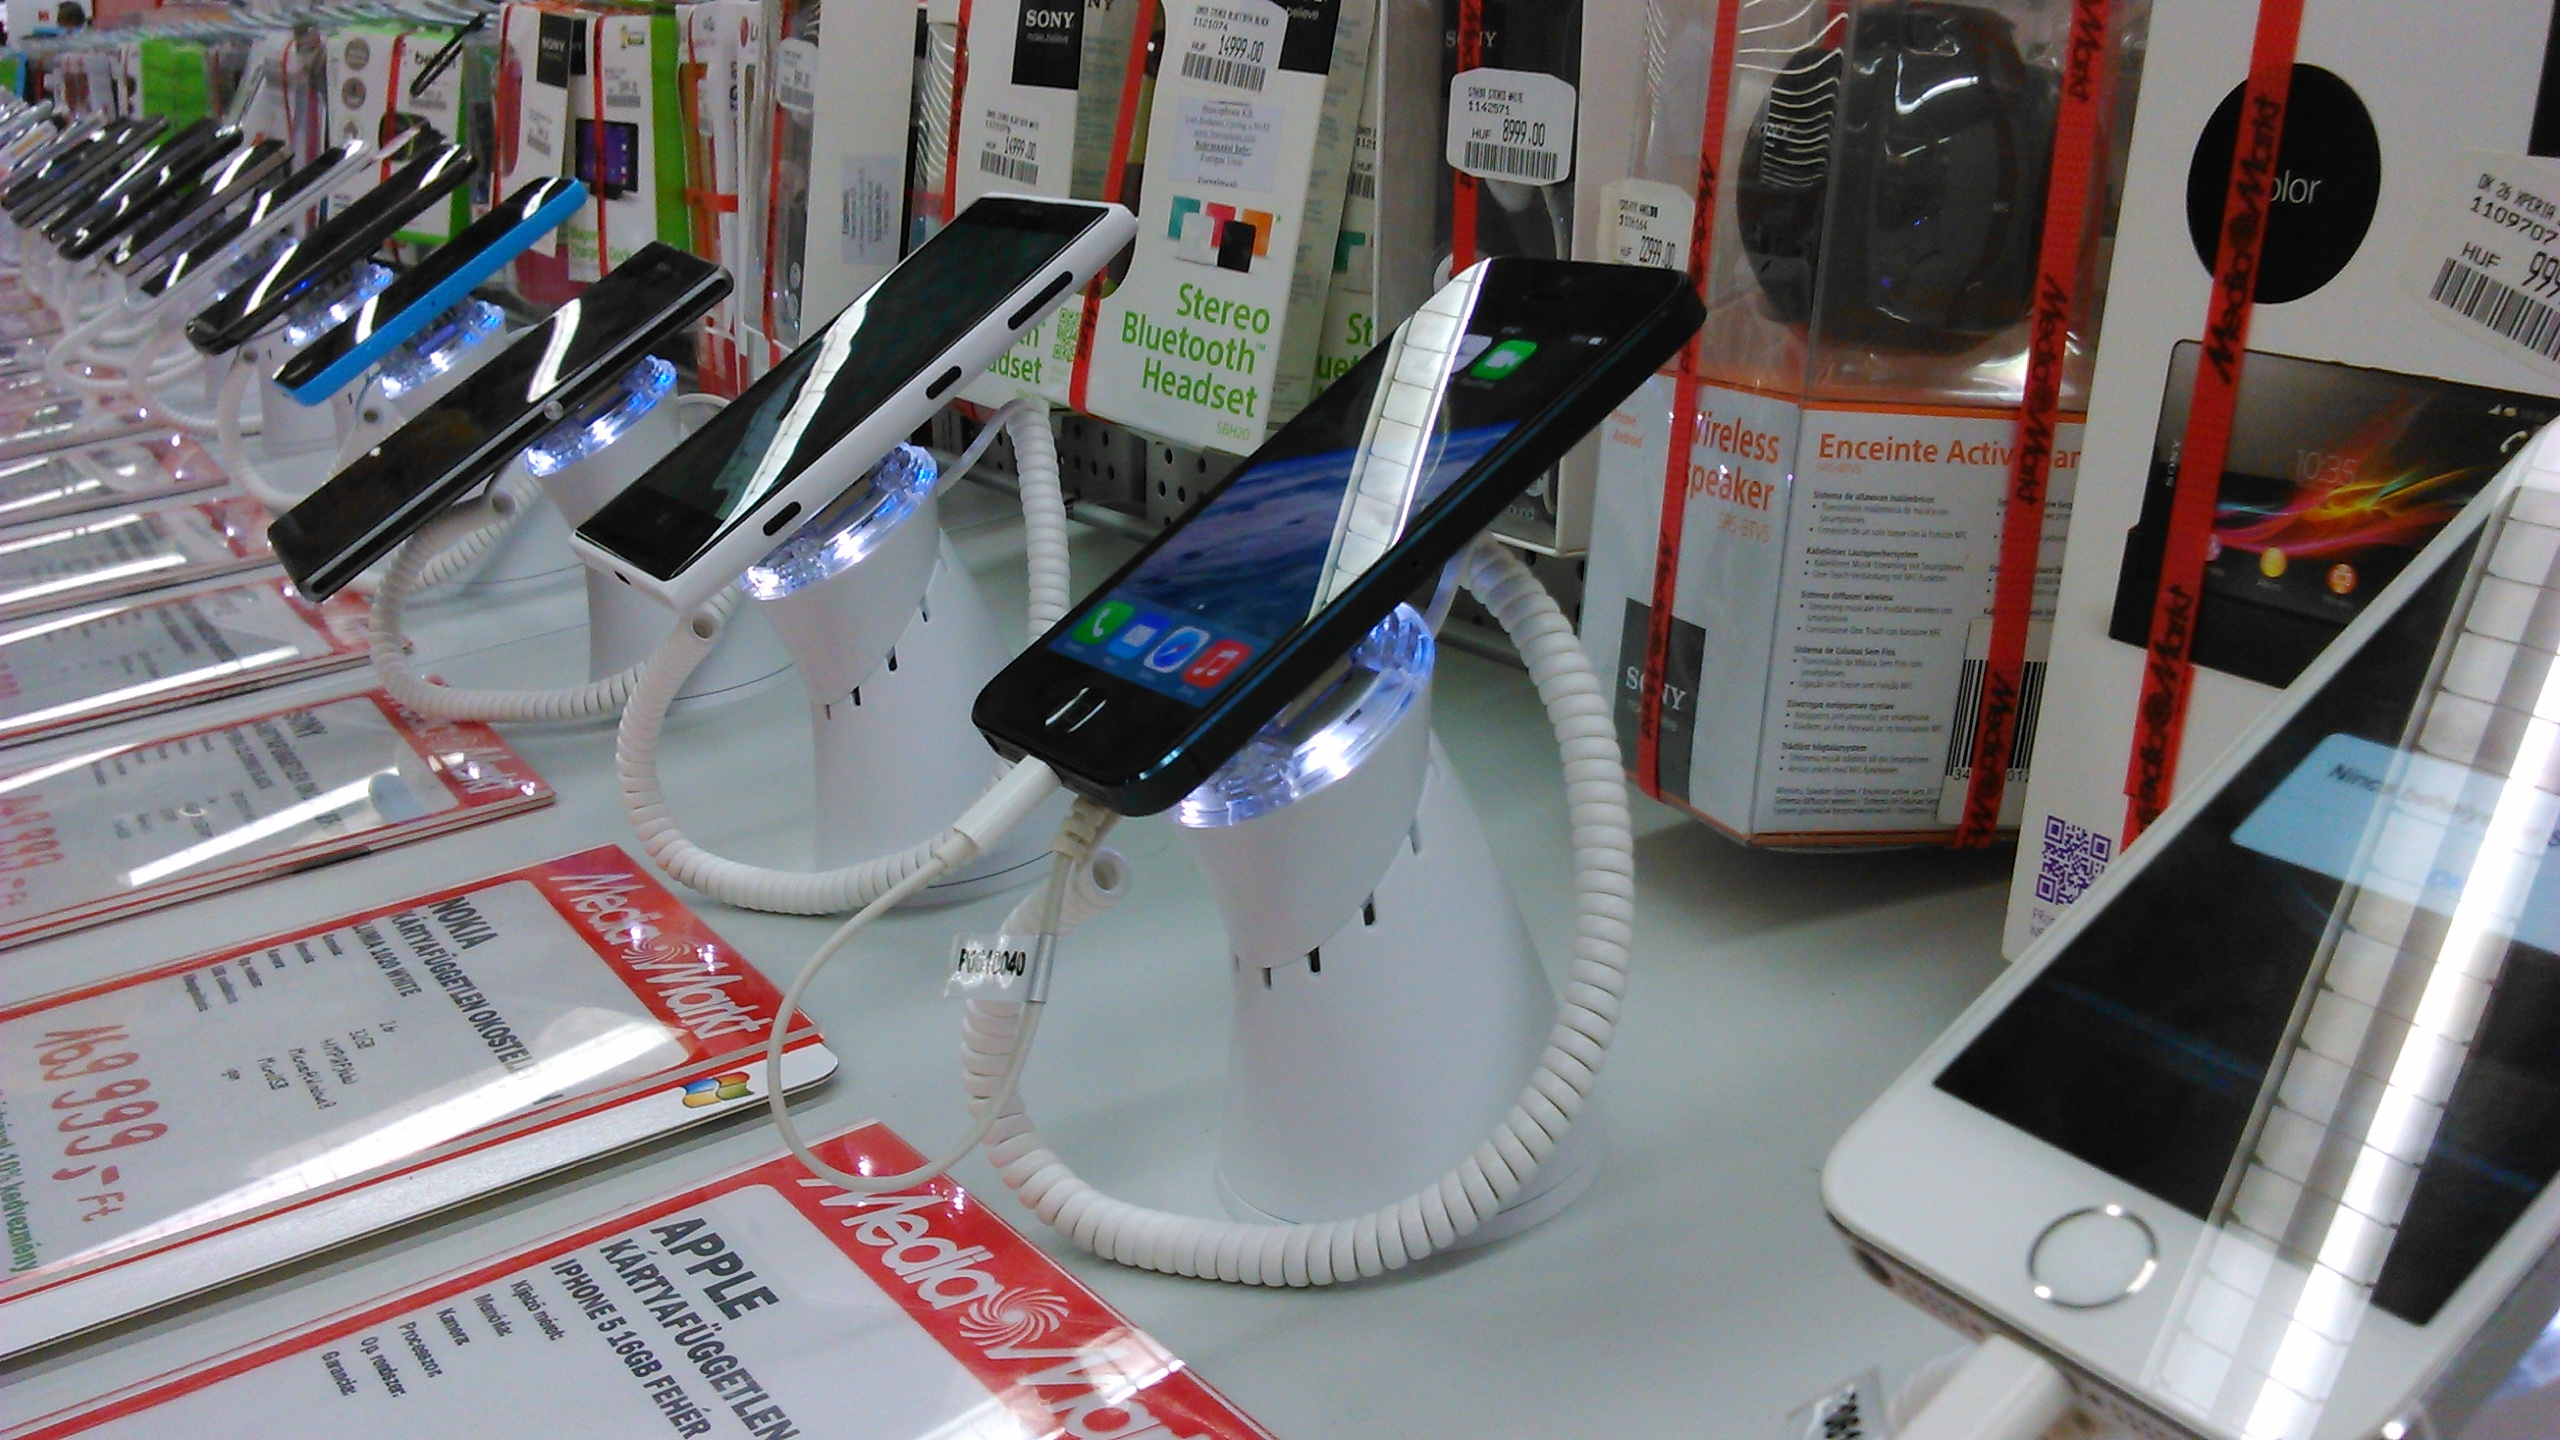 Media Markt Moviles Smartphone Libres Media Markt Shopguard